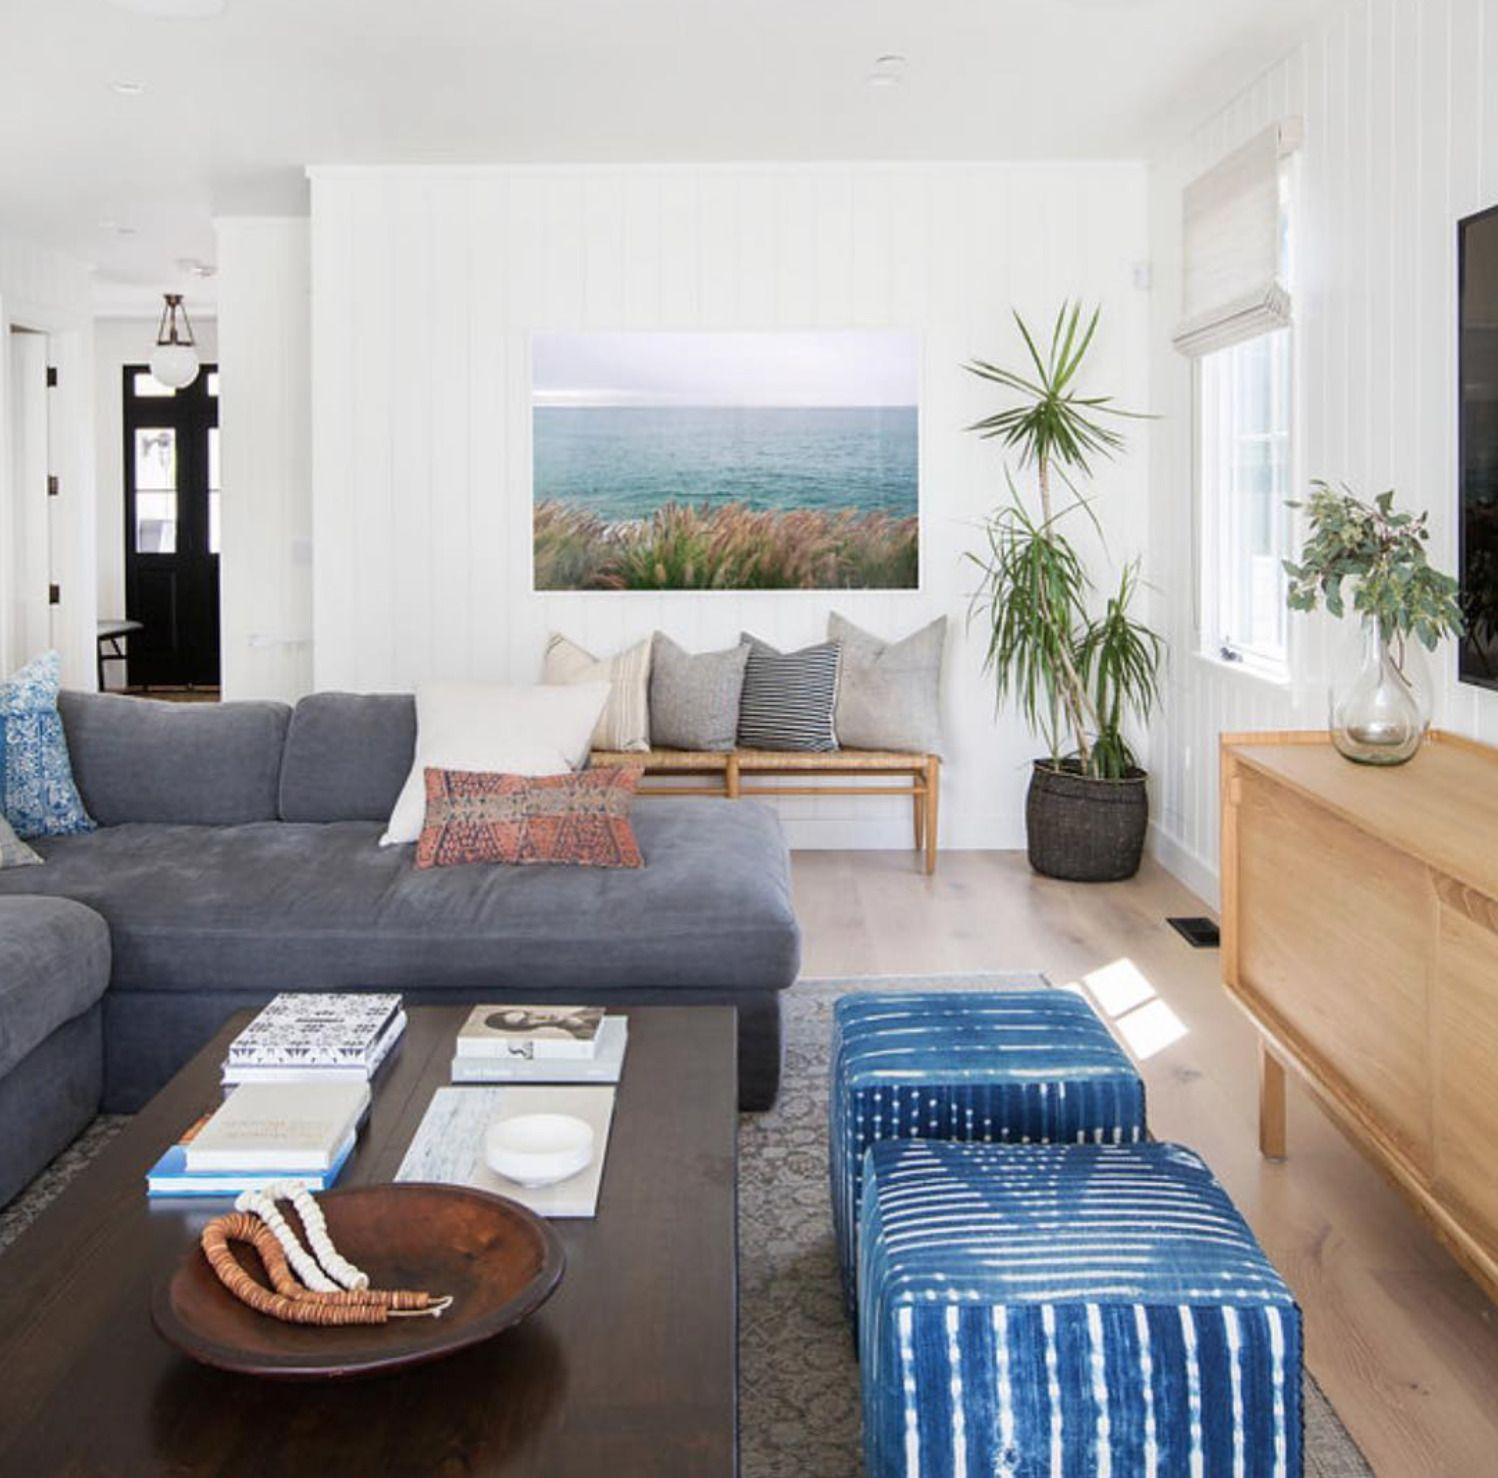 Family Rooms We Love: East Coast Beach Vibes Meet Modern Farm House In This